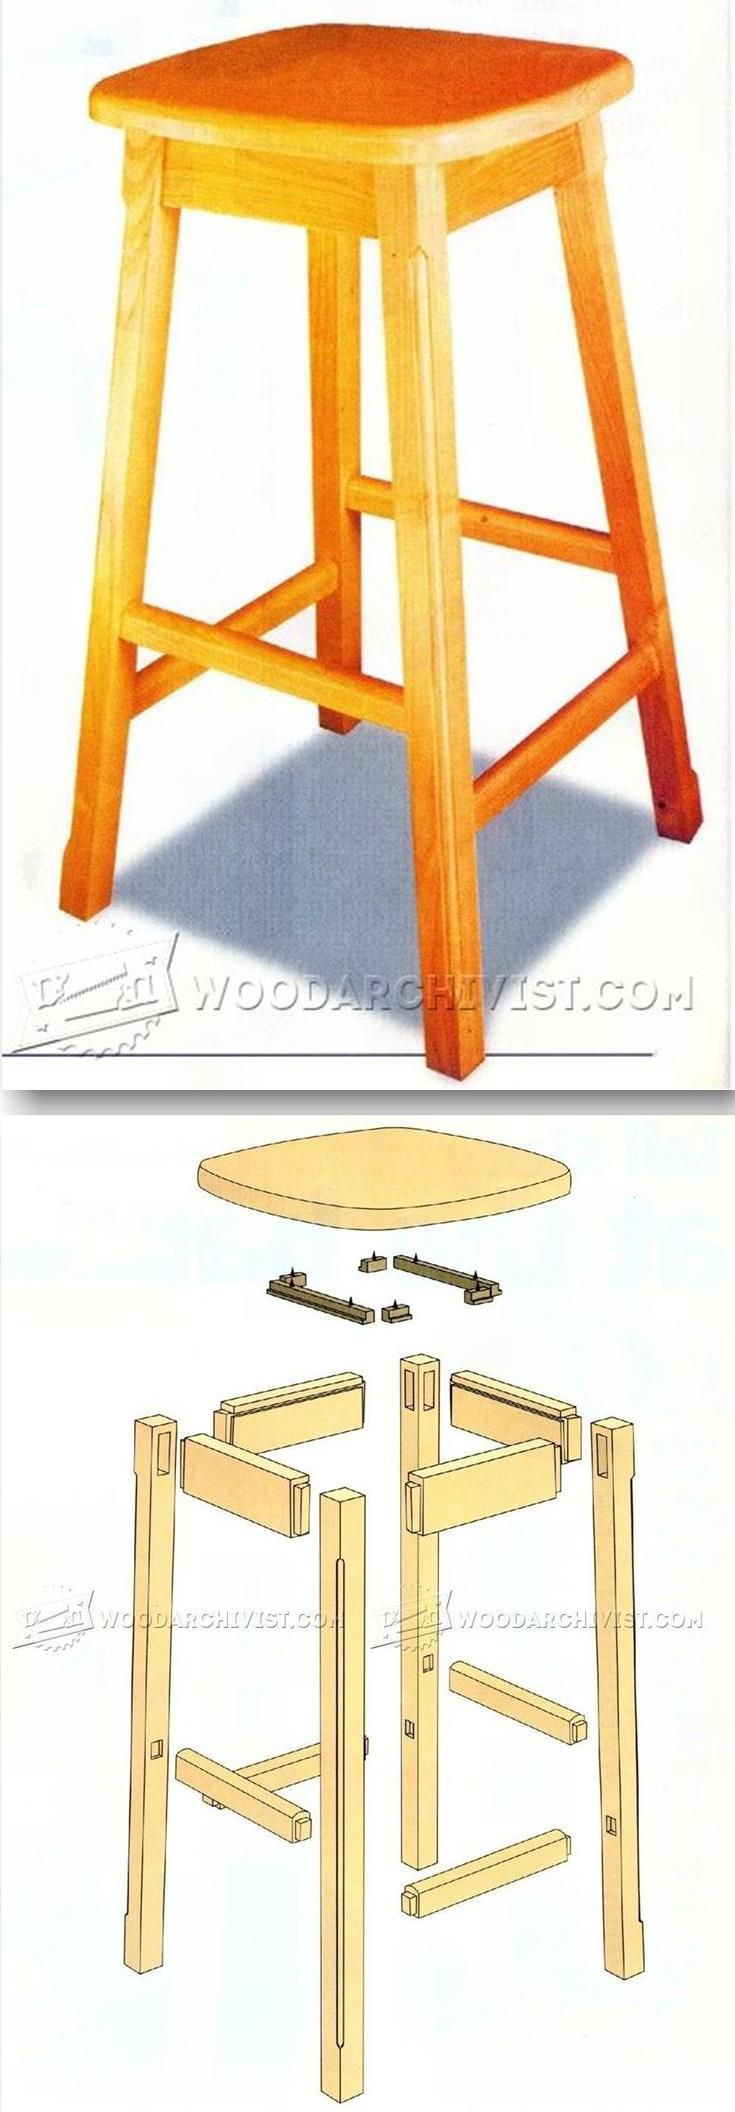 Kitchen Stool Plans - Furniture Plans and Projects | WoodArchivist ...